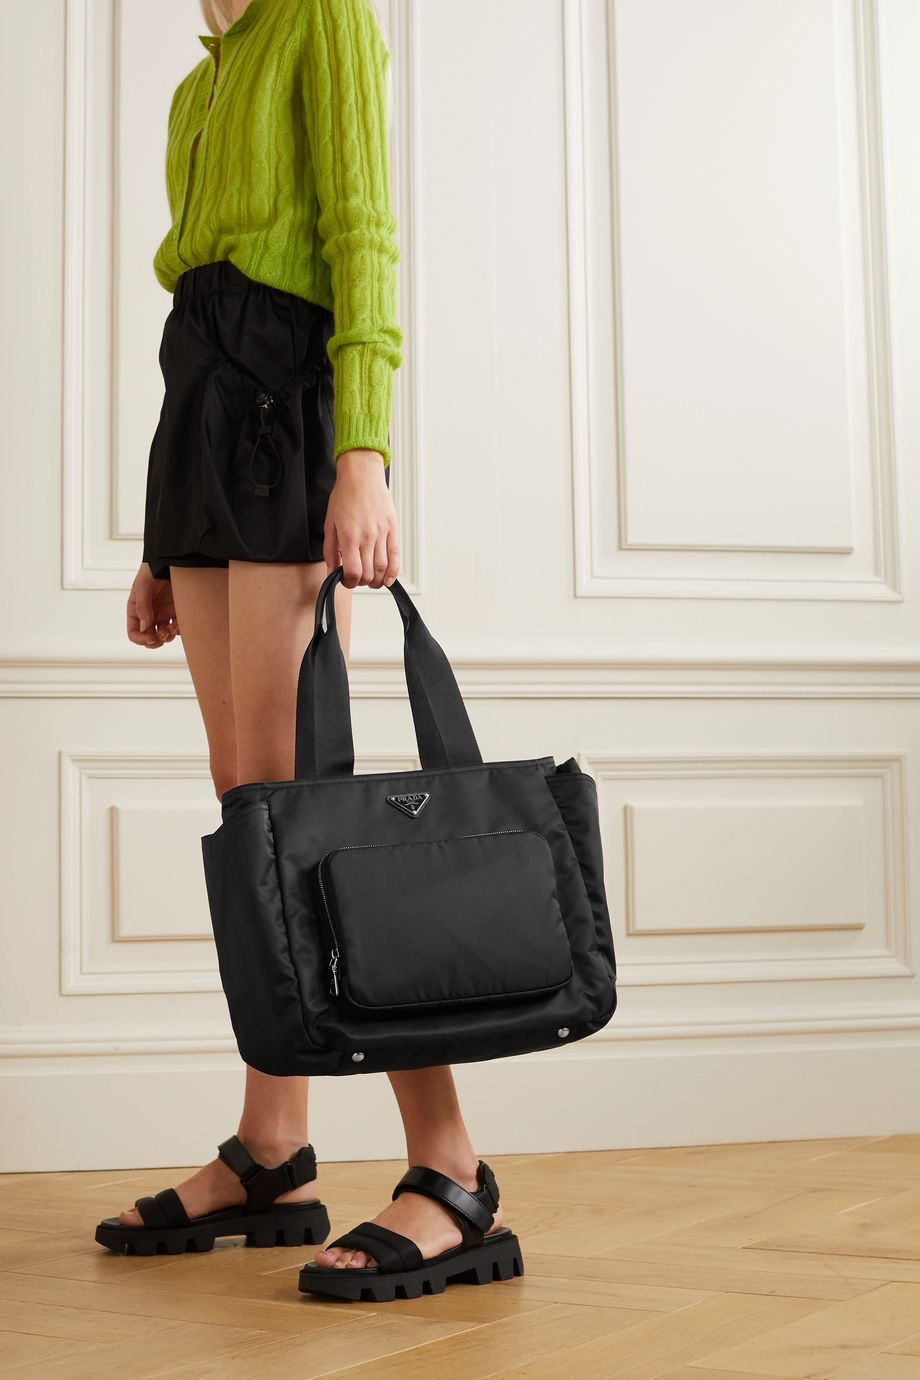 Prada Vela leather-trimmed nylon tote